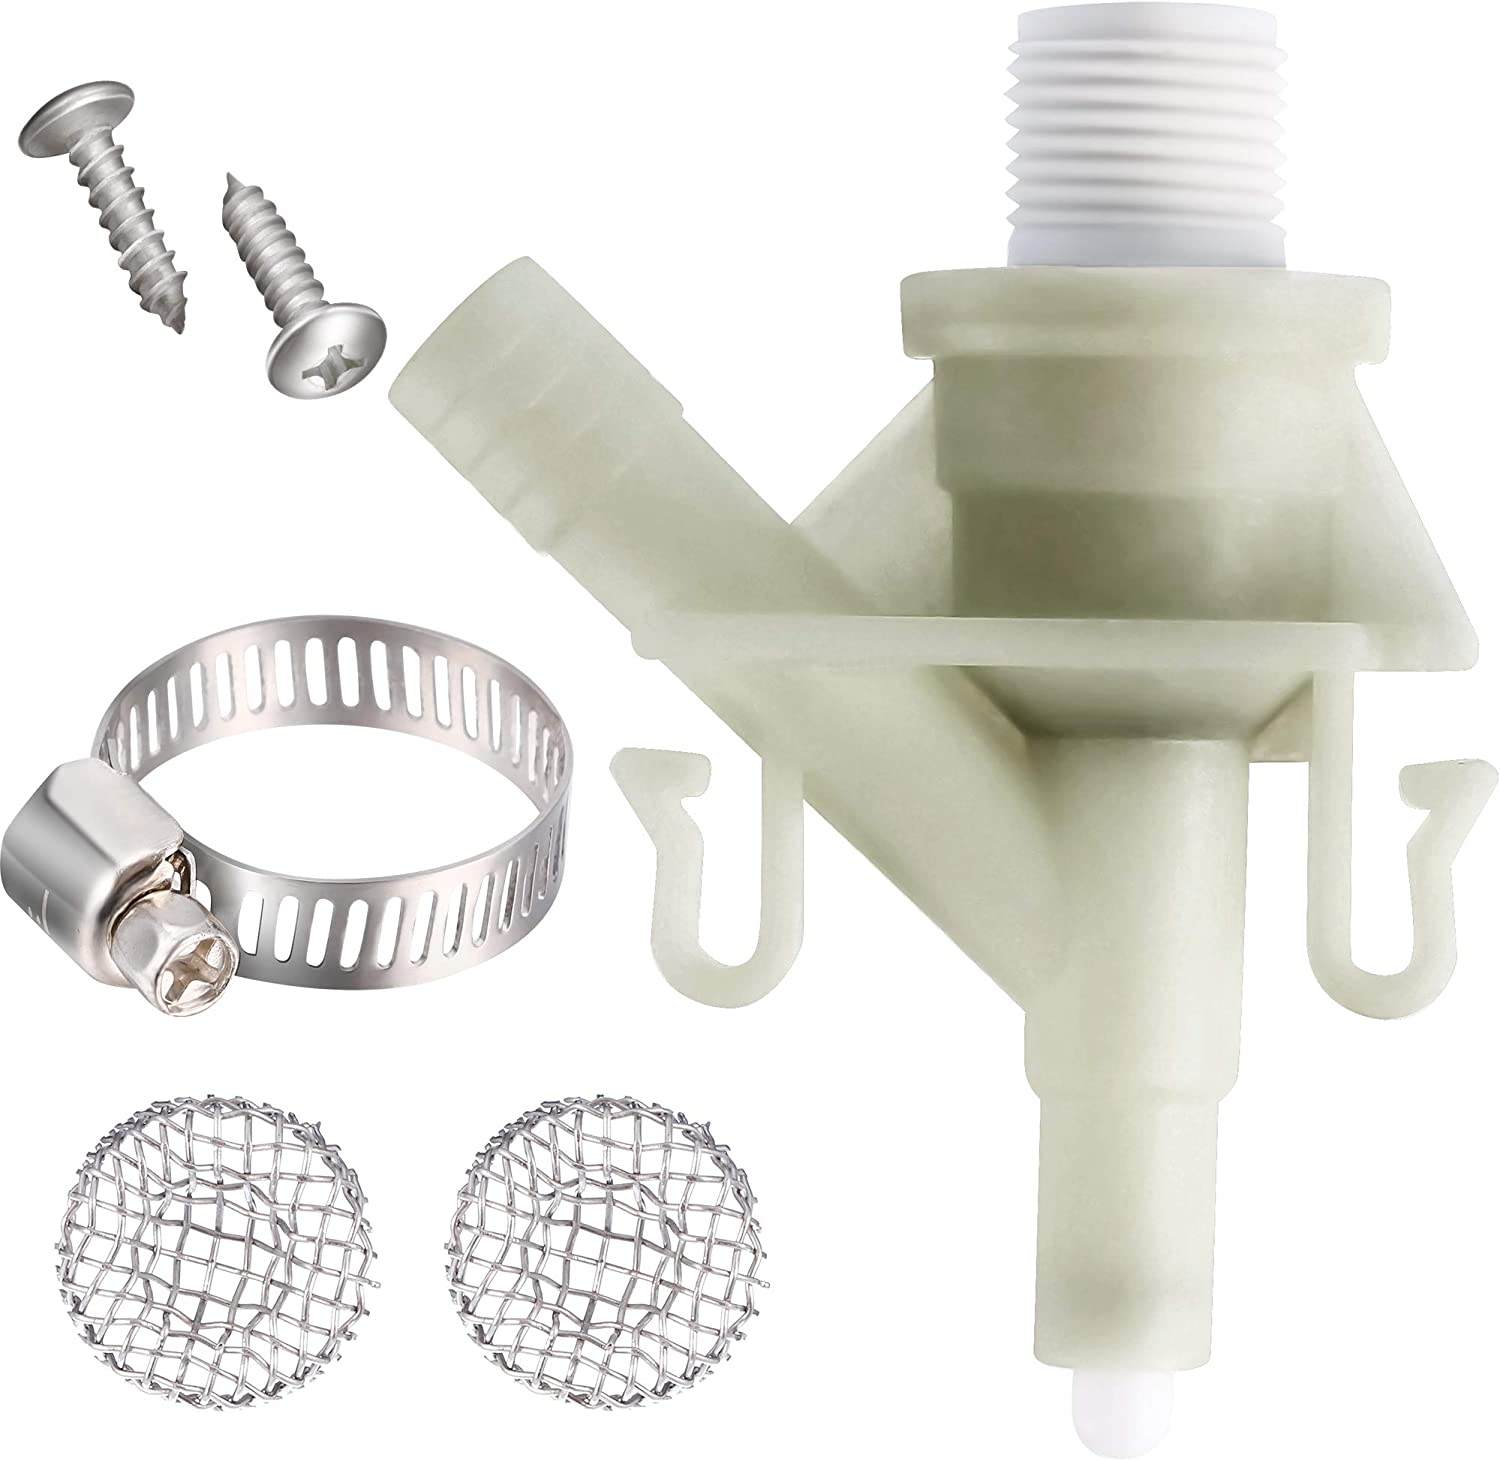 Plastic Water 35% OFF Valve Kit 385311641 for Series 310 Compati 300 Max 57% OFF 320